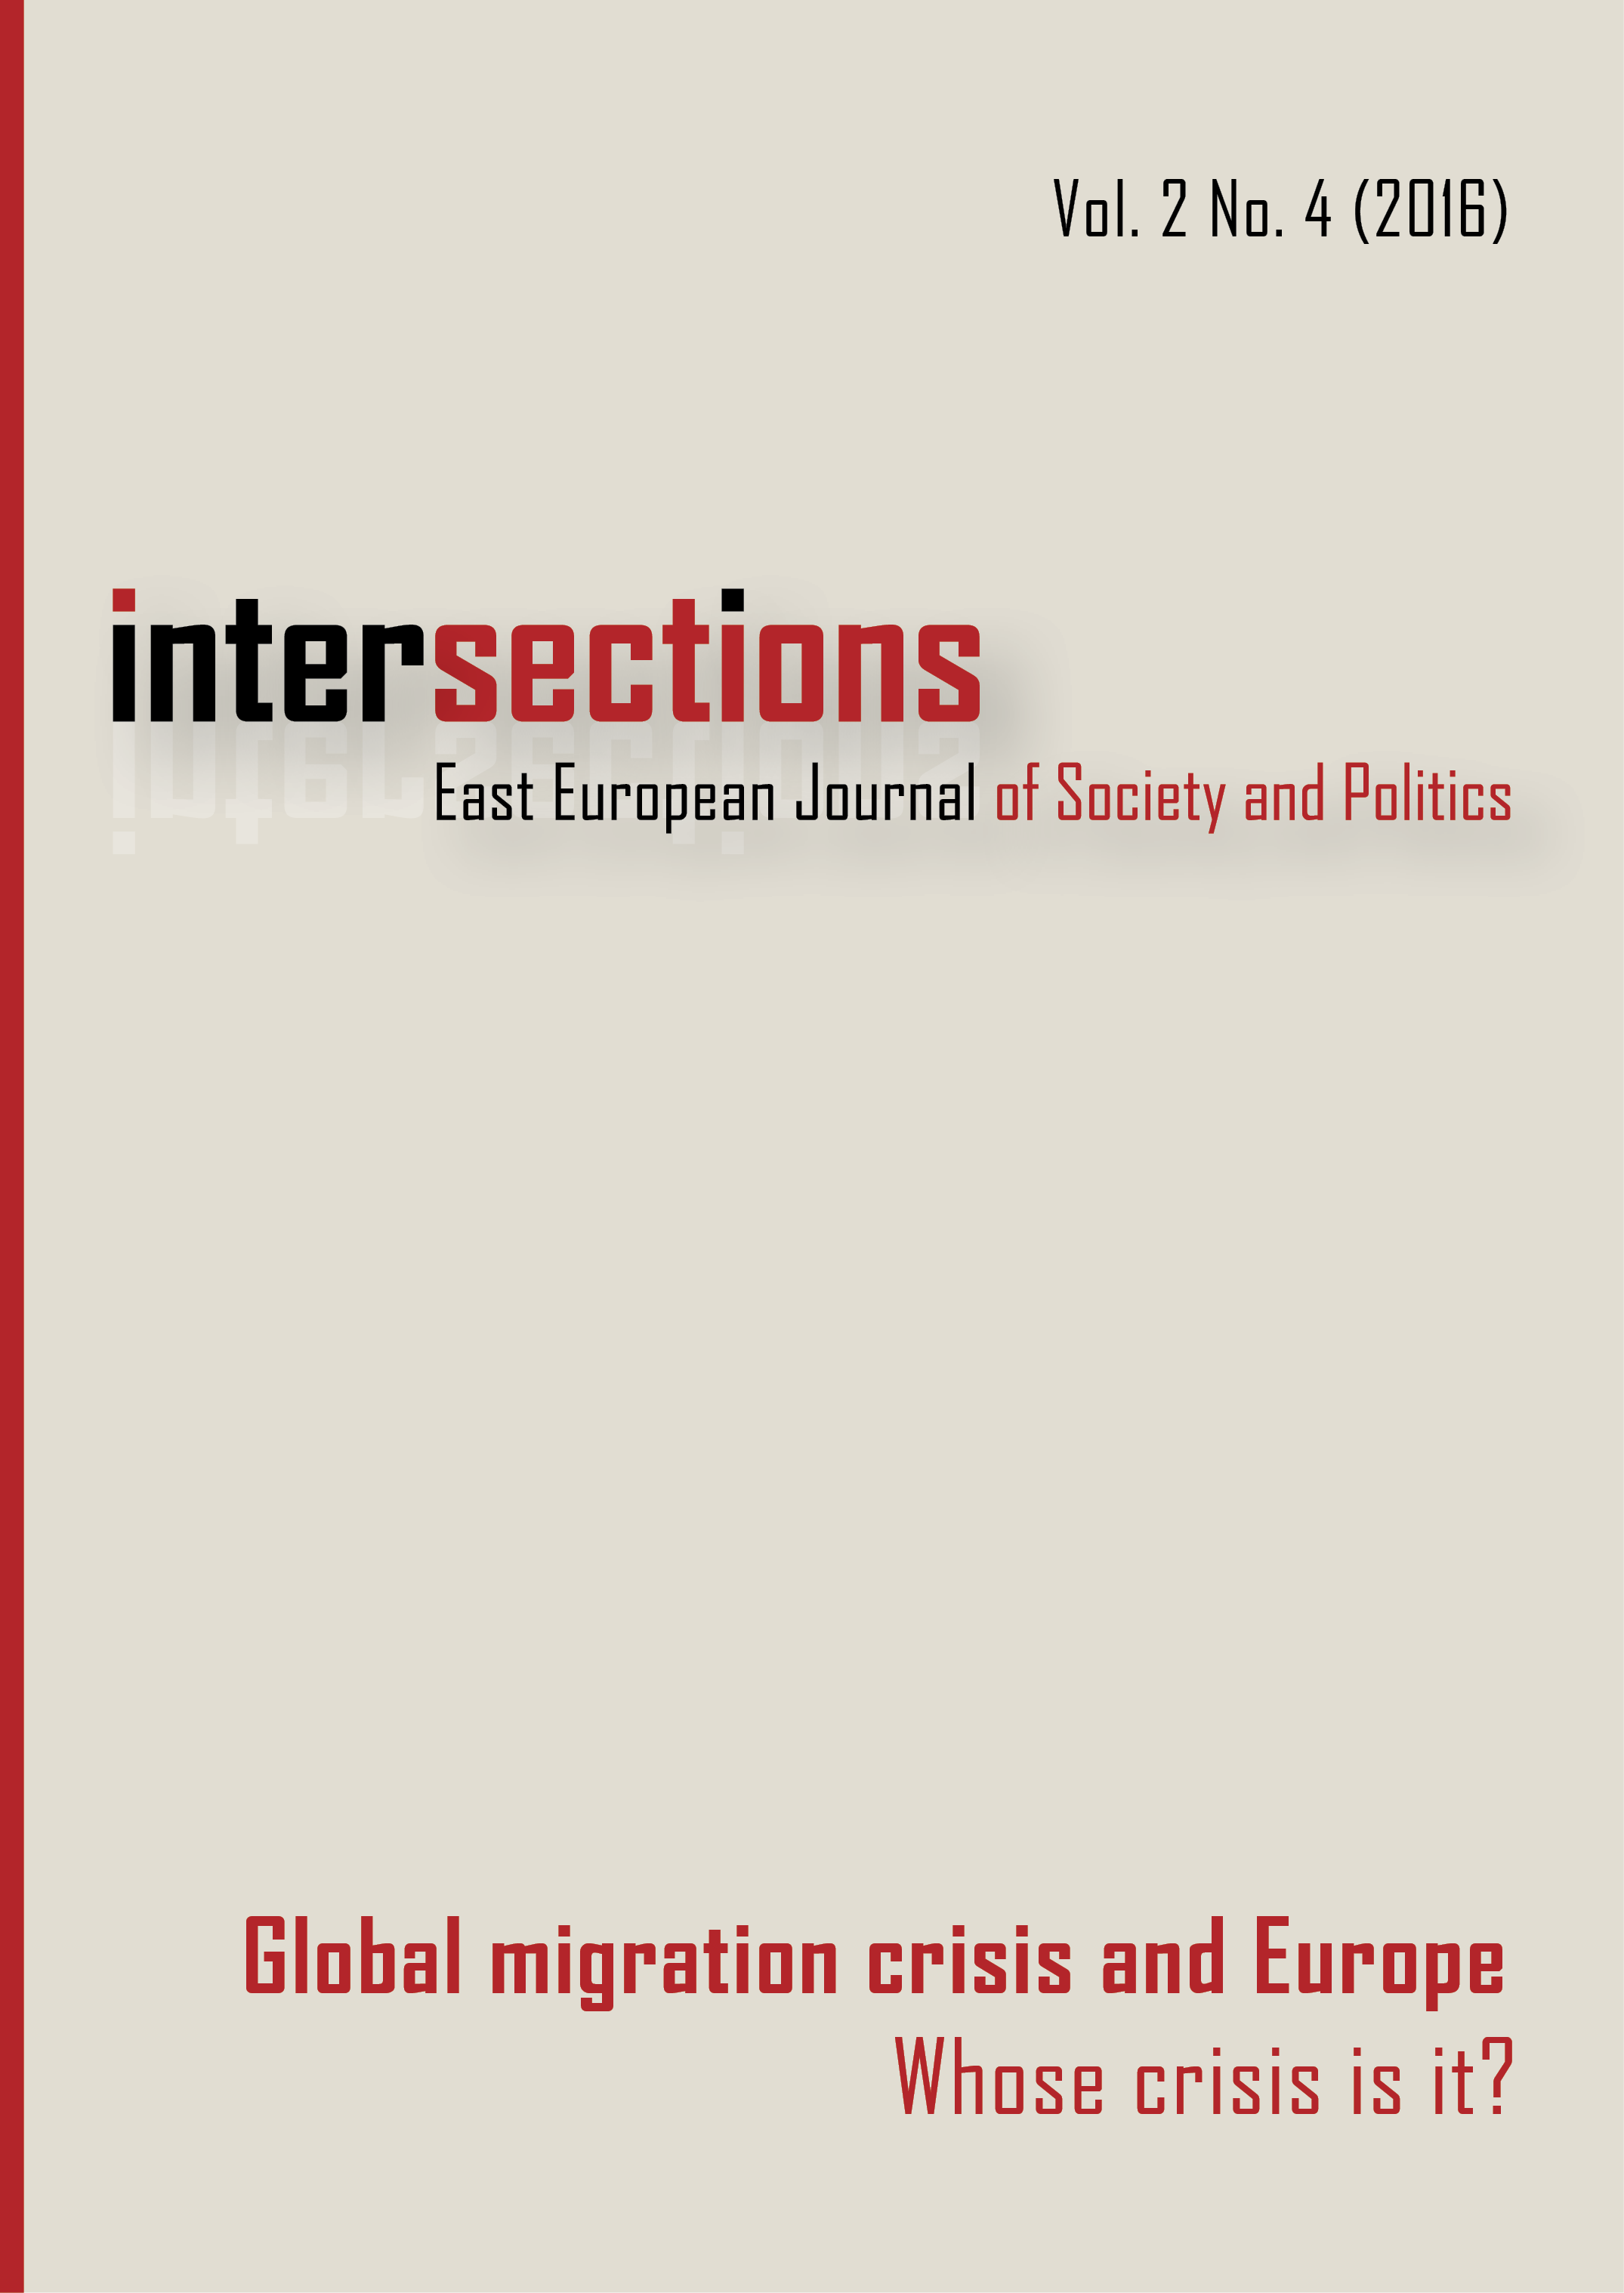 View Vol. 2 No. 4 (2016): Global Migration Crisis and Europe: Whose Crisis is it?